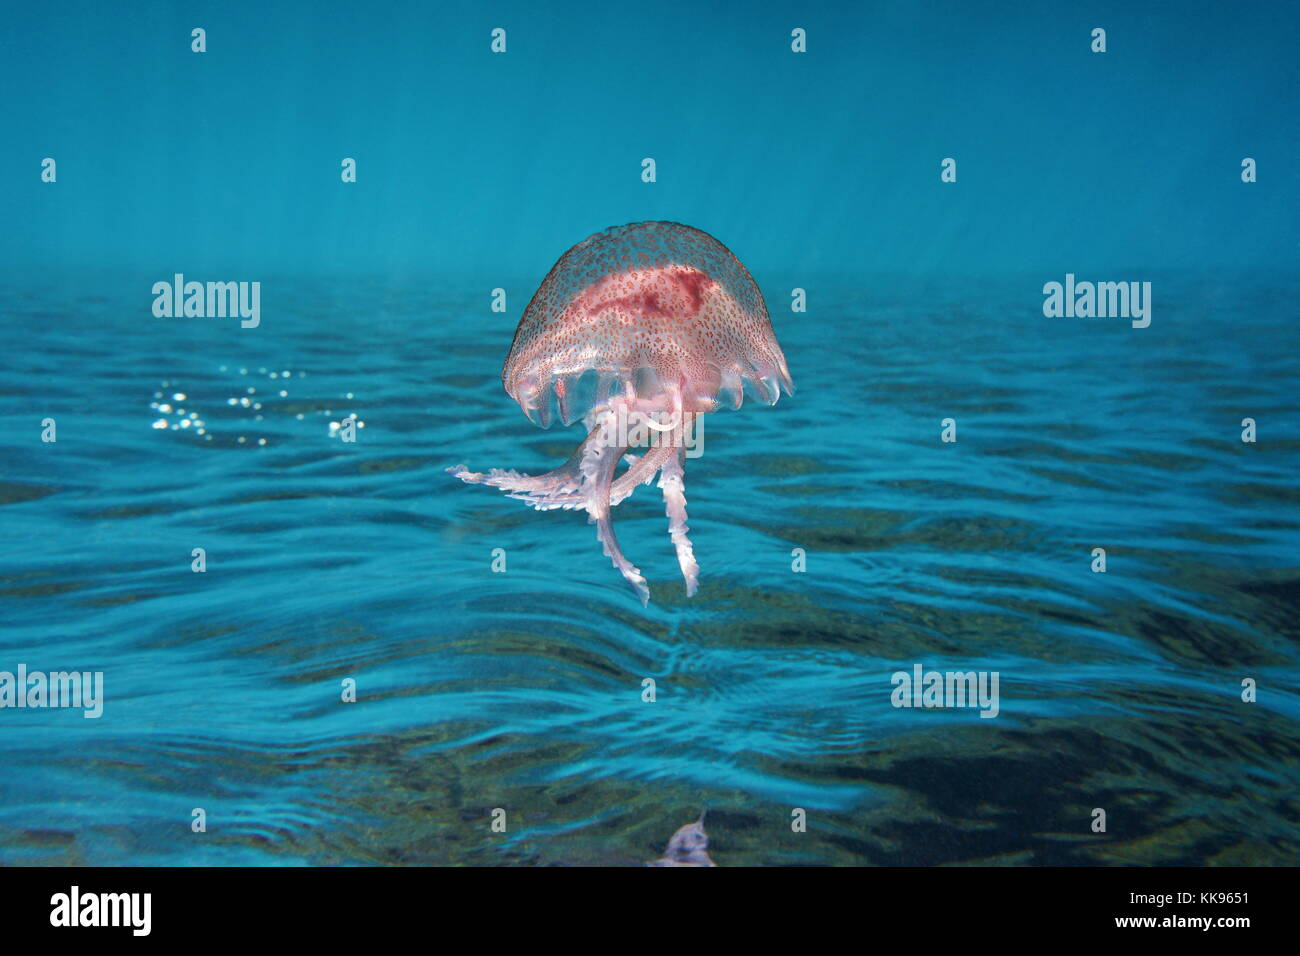 Underwater sea surface with a jellyfish mauve stinger Pelagia Noctiluca, inverted image, Mediterranean, Cote d'Azur, - Stock Image